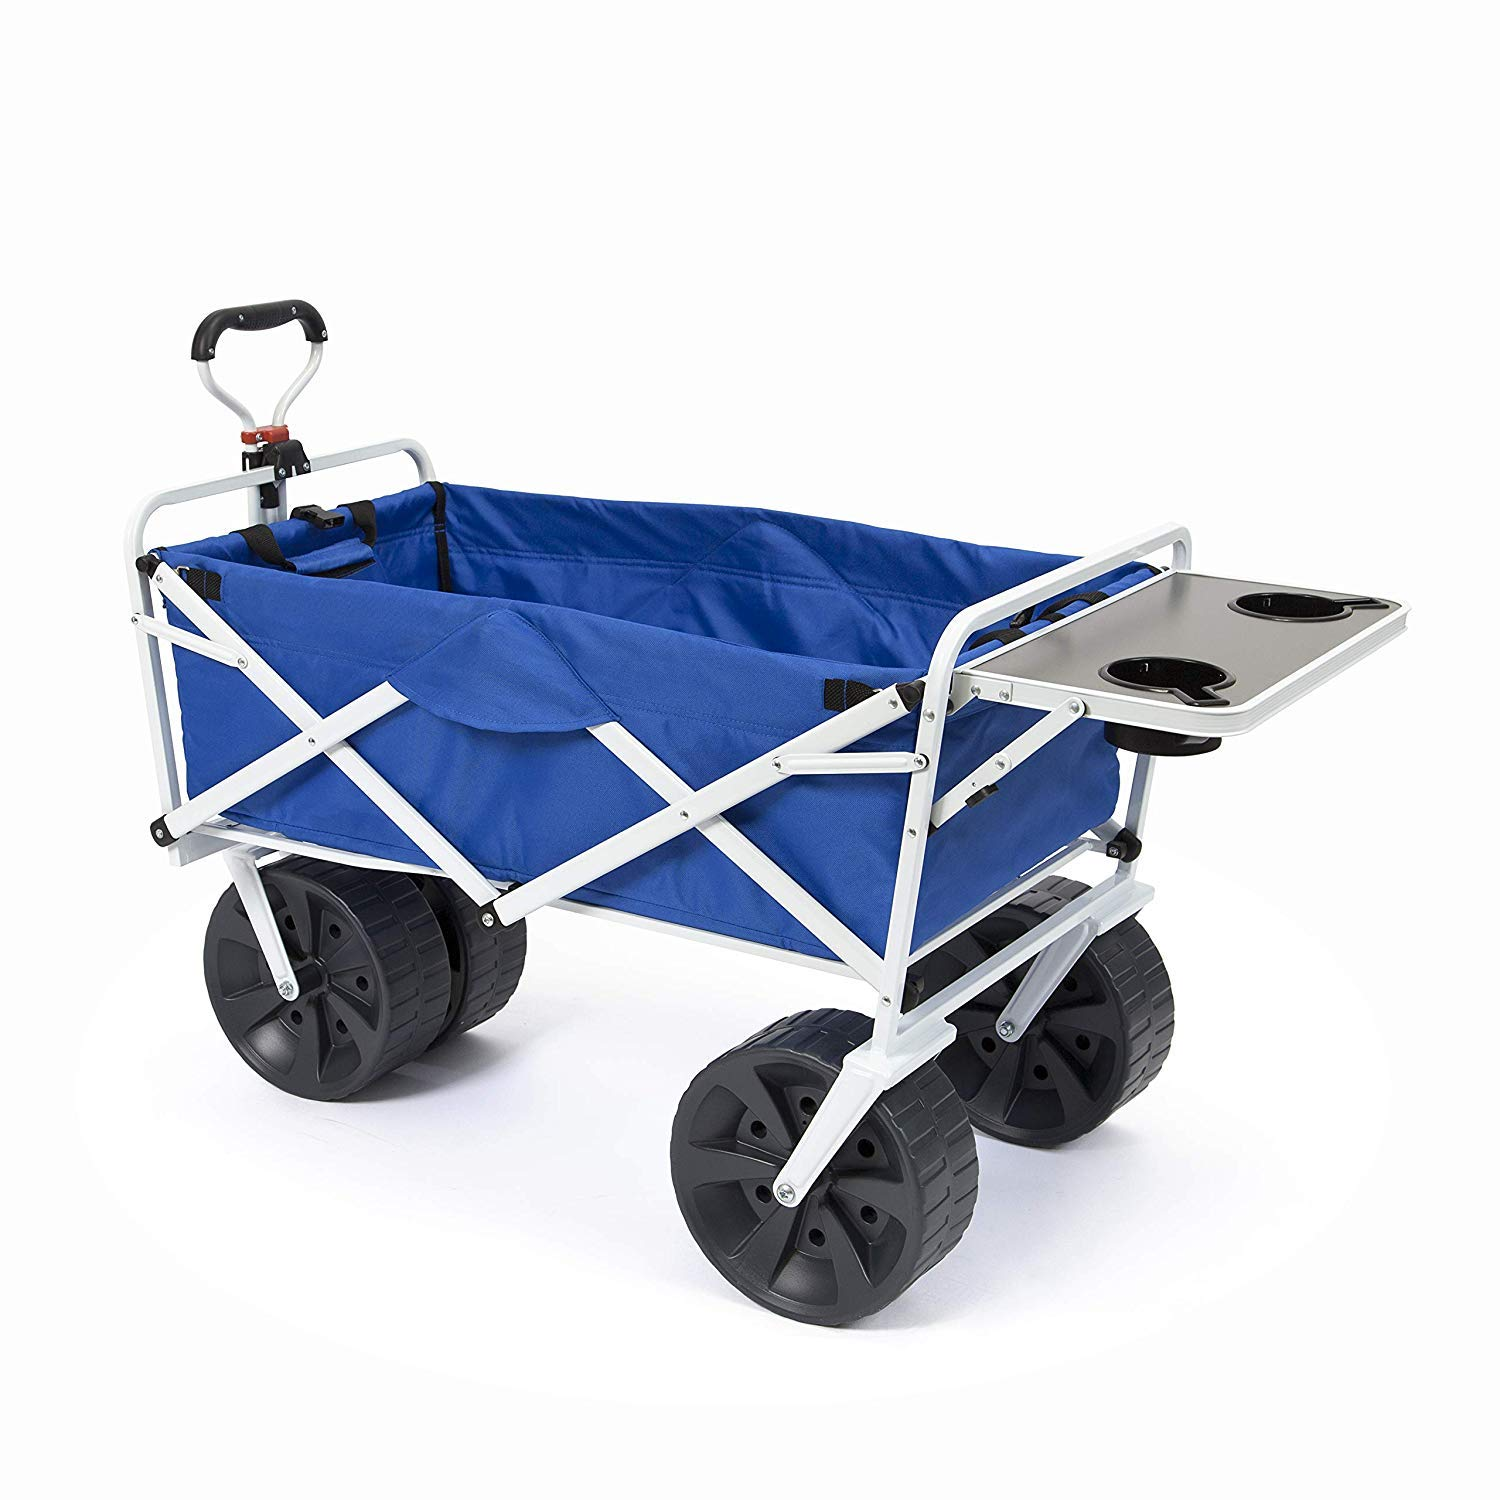 Mac Sports Heavy Duty Collapsible Folding All Terrain Utility Wagon Cart with Side Table, Blue/White